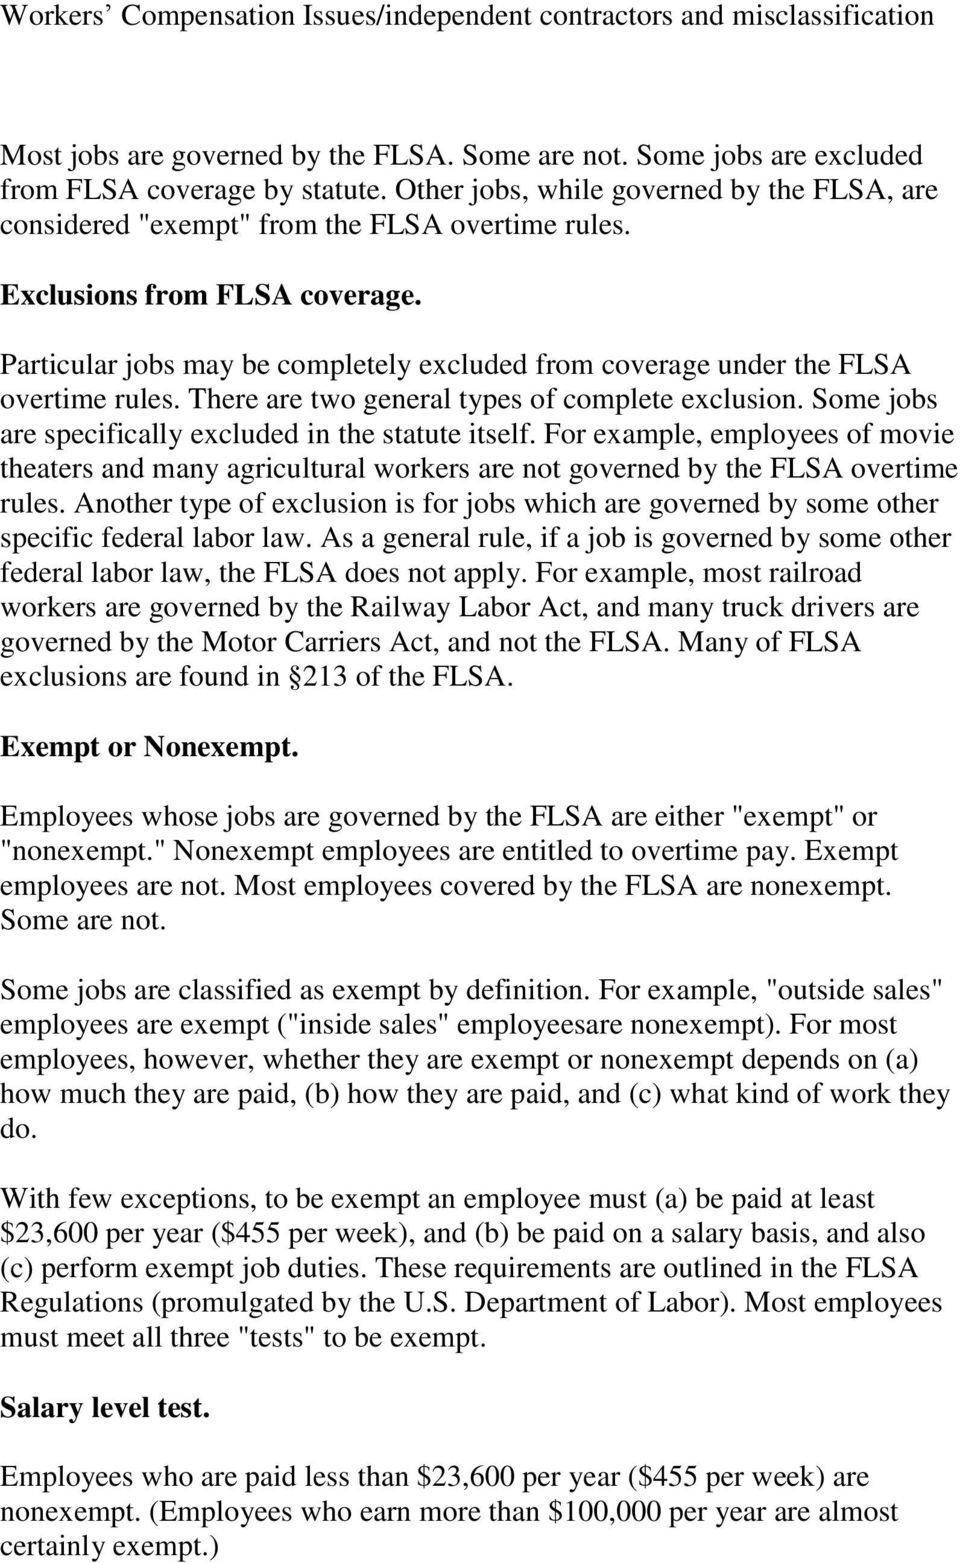 Particular jobs may be completely excluded from coverage under the FLSA overtime rules. There are two general types of complete exclusion. Some jobs are specifically excluded in the statute itself.